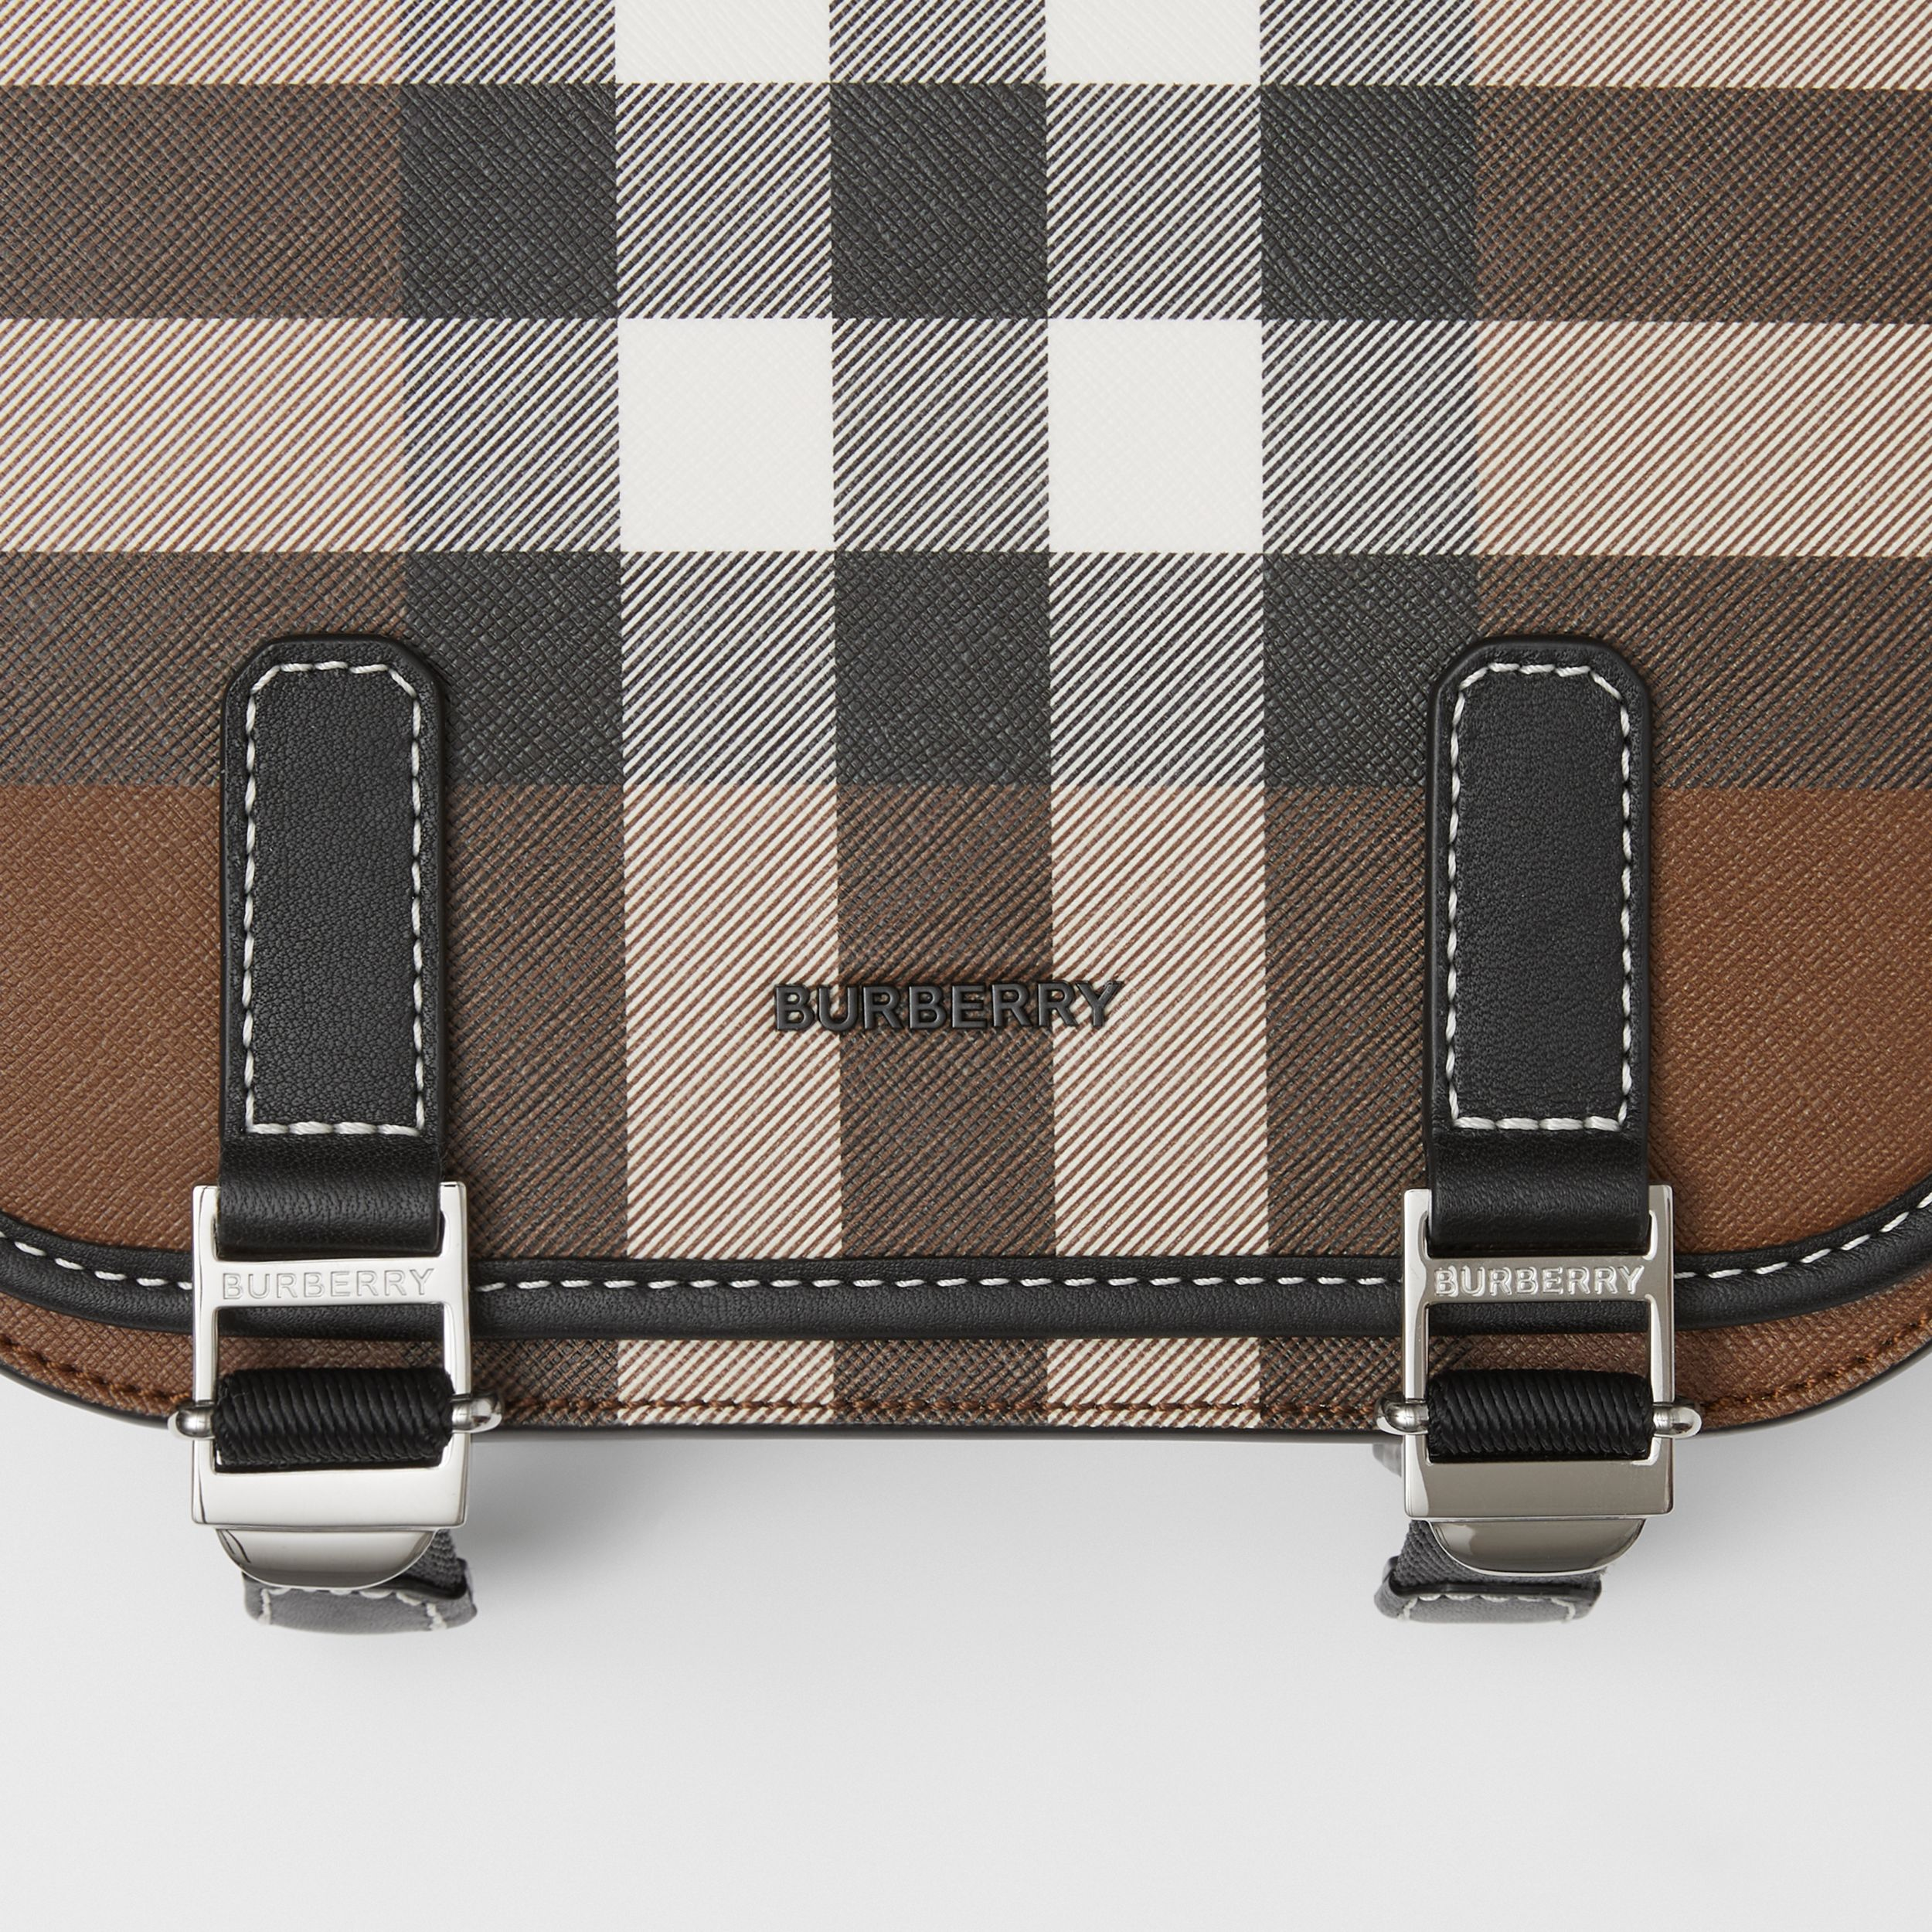 Check E-canvas Messenger Bag in Dark Birch Brown - Men | Burberry - 2